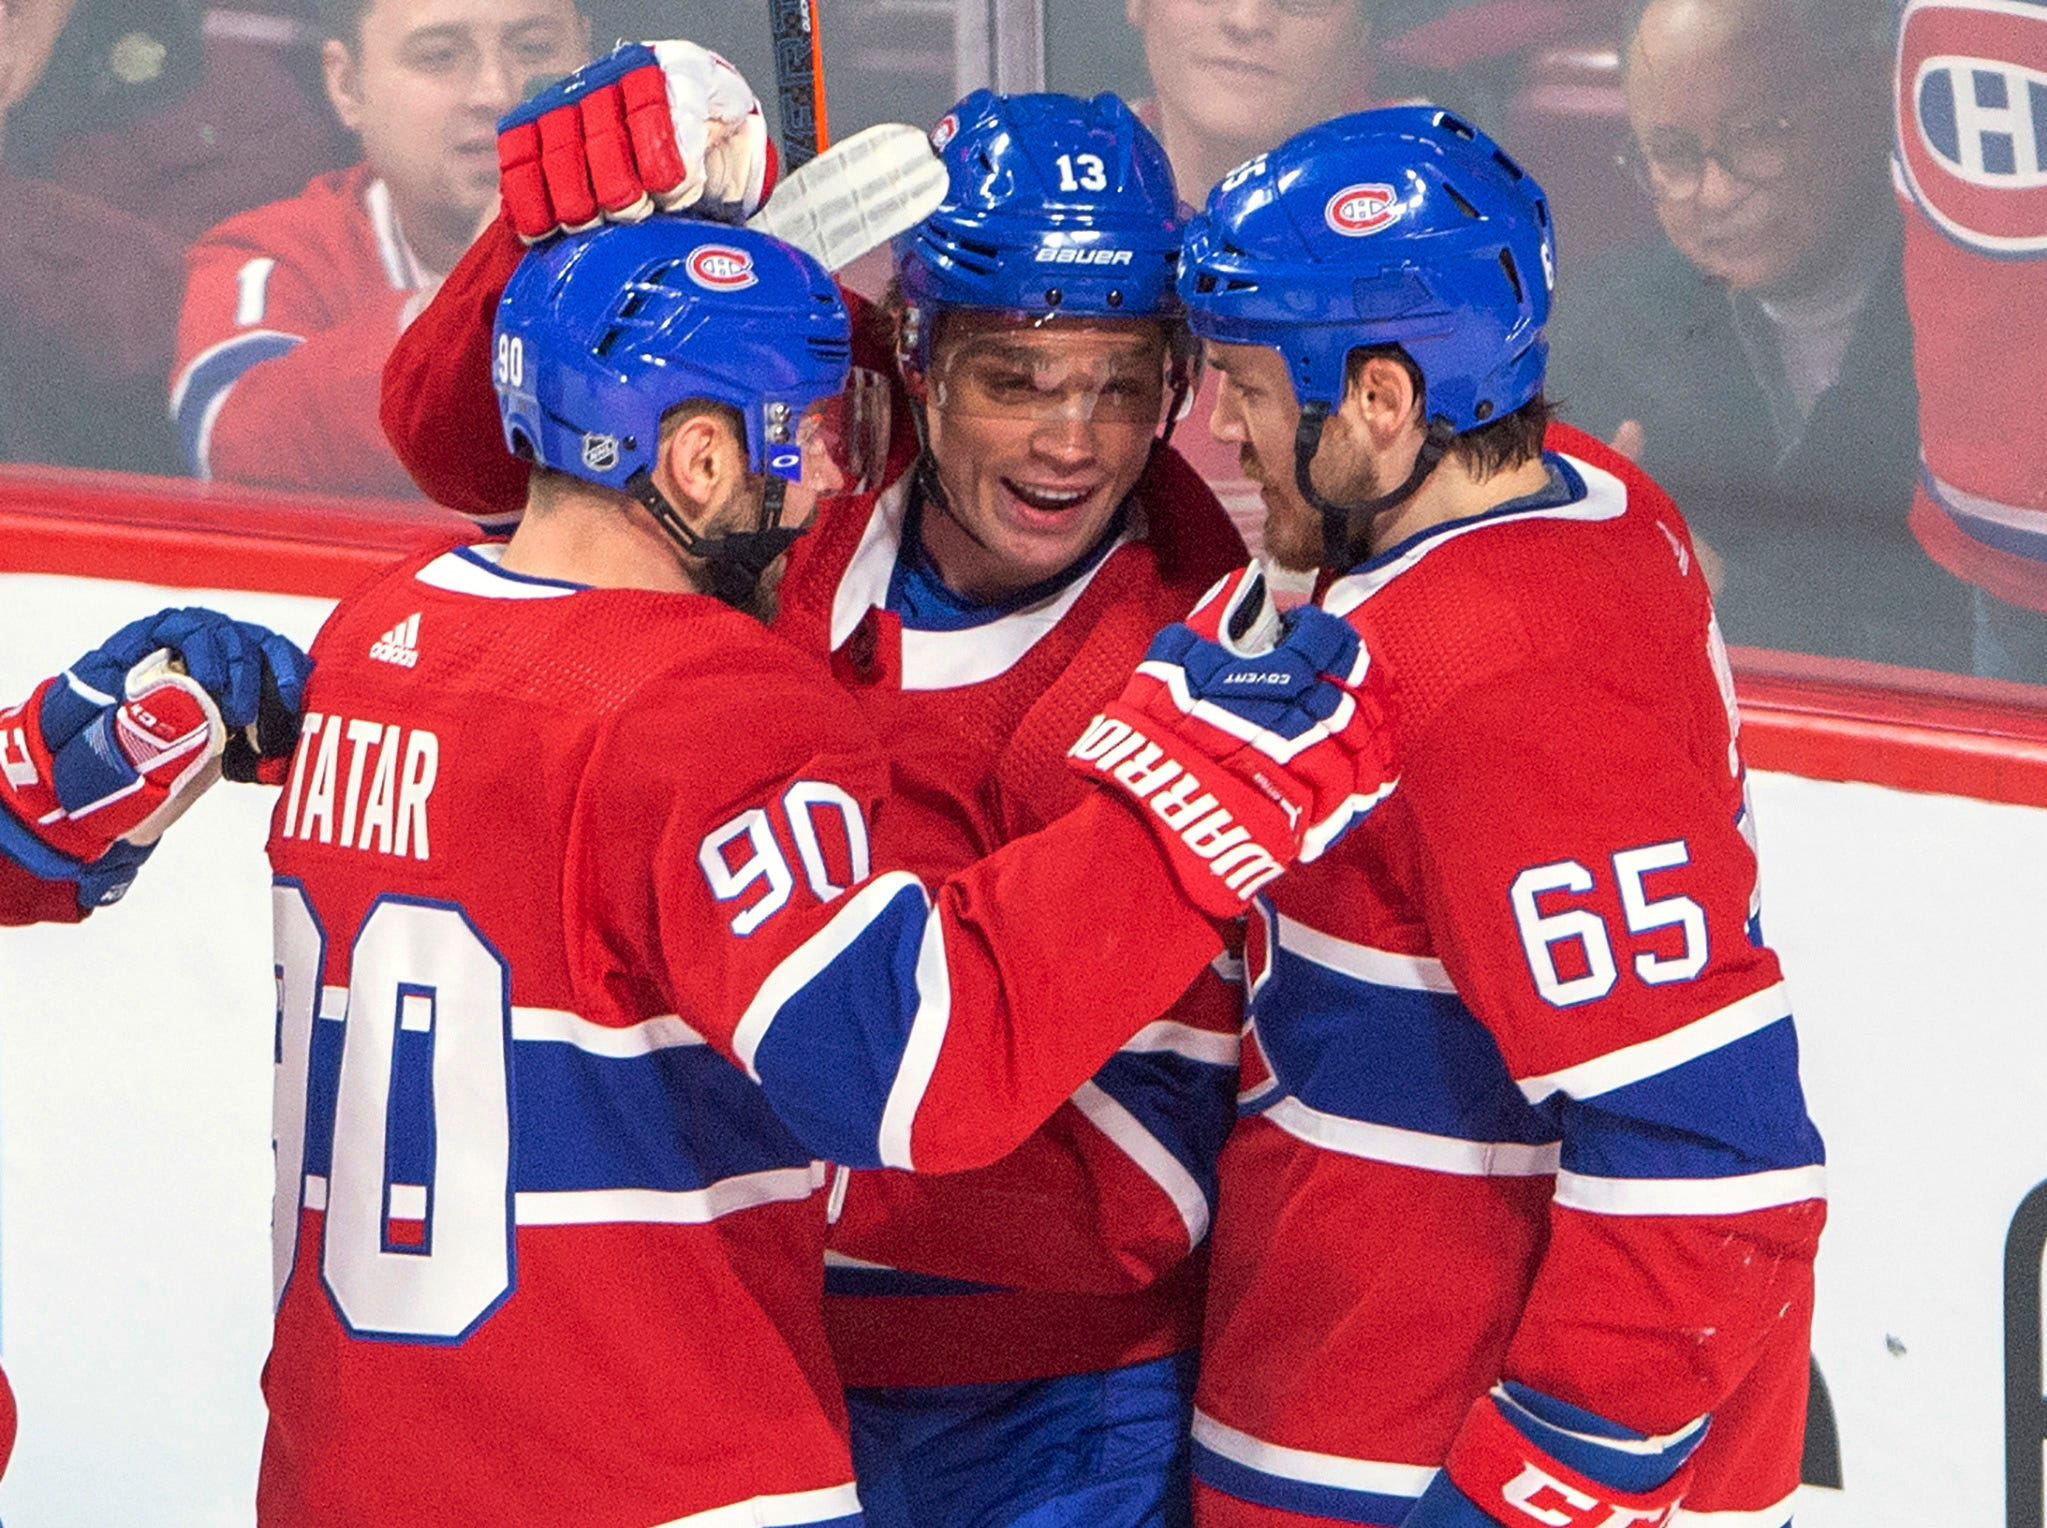 Montreal Canadiens center Max Domi (13) celebrates with teammates Tomas Tatar (90) and Andrew Shaw (65) after scoring against the Detroit Red Wings during the second period.